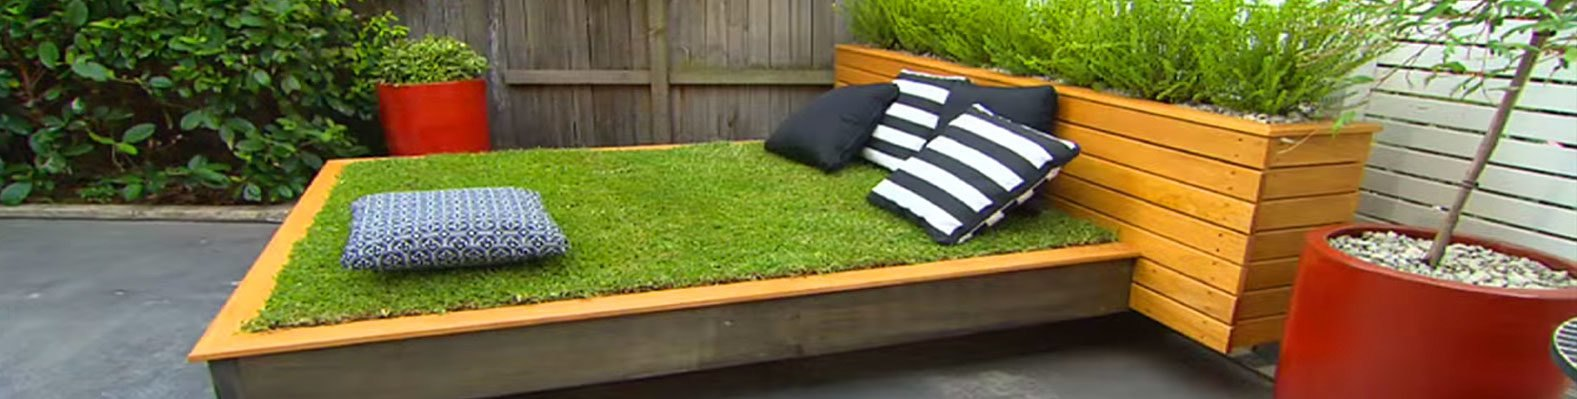 Diy garden guru makes outdoor grass daybed out of wood pallets diy garden guru makes outdoor grass daybed out of wood pallets inhabitat green design innovation architecture green building solutioingenieria Choice Image